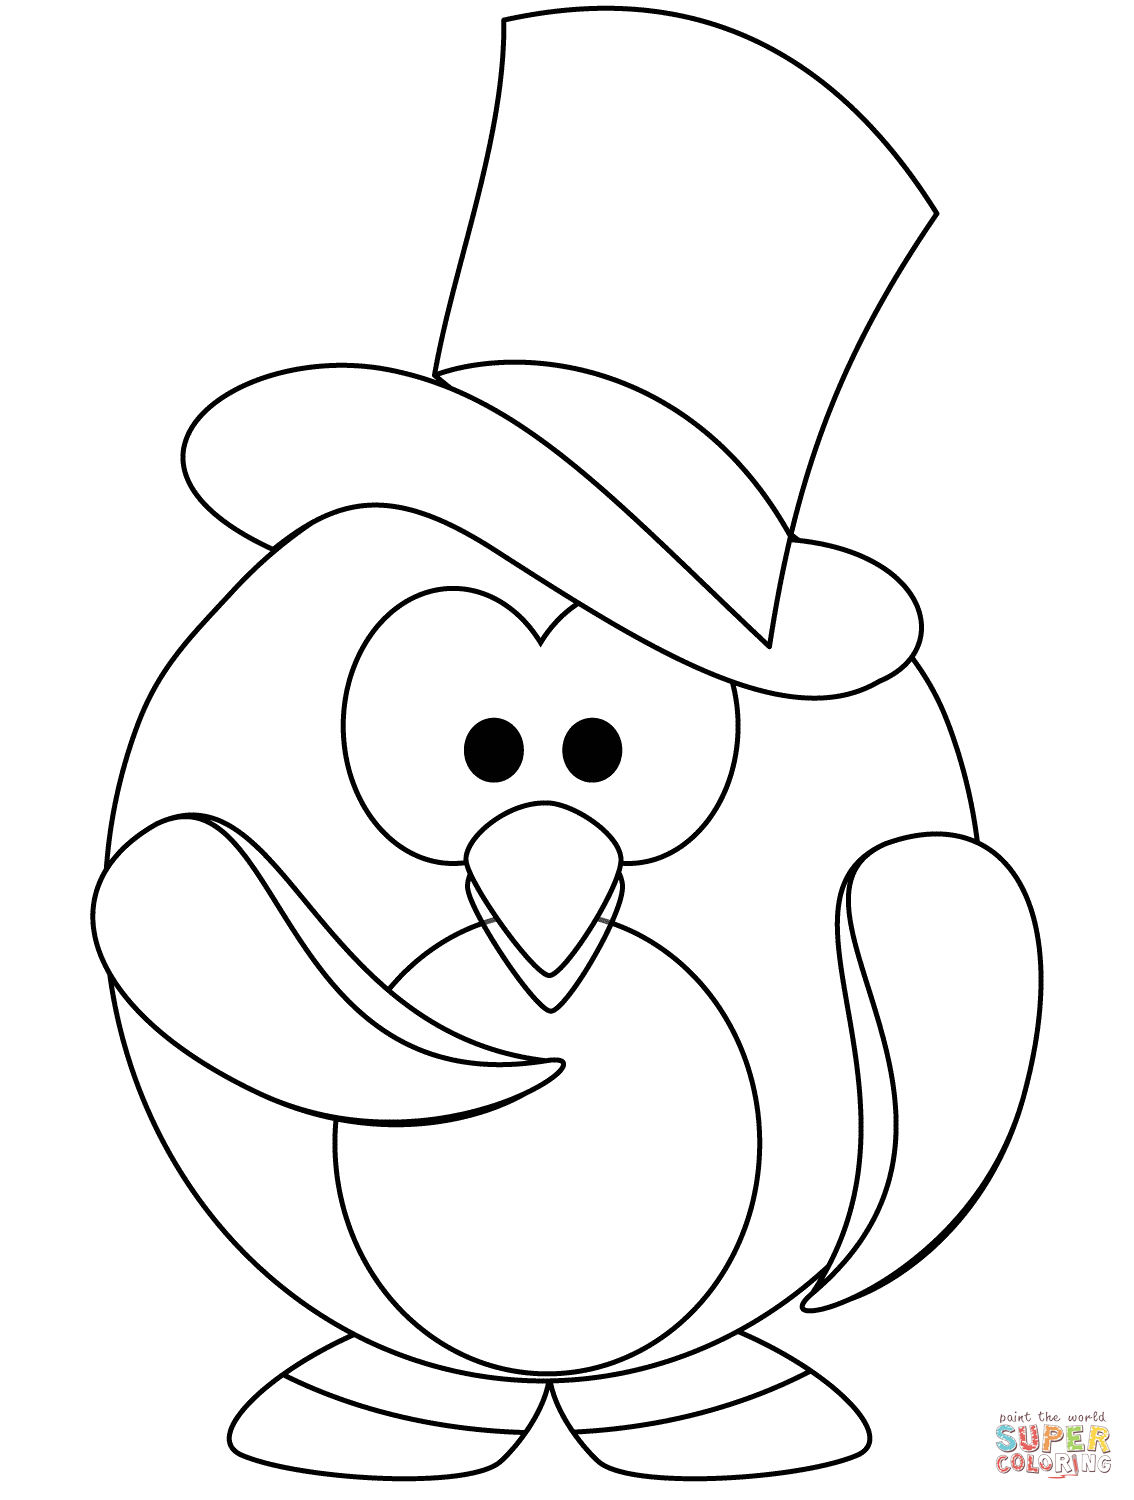 Penguin Worksheet Coloring Page